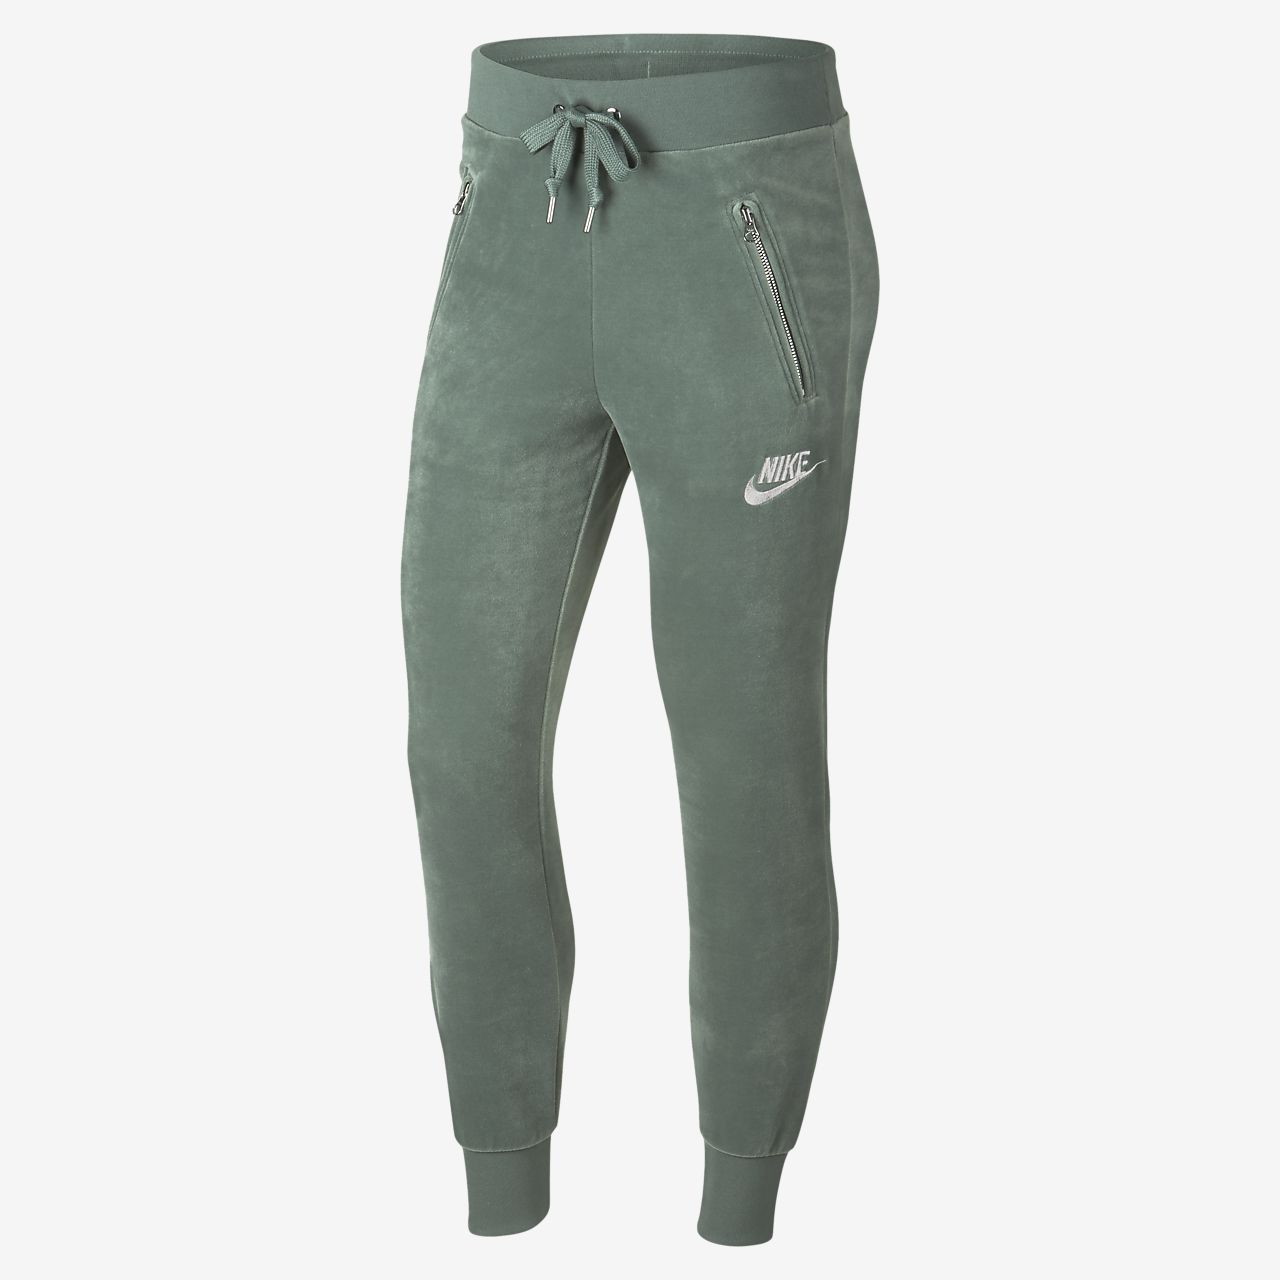 Low Resolution Nike Sportswear Women's Velour Pants Nike Sportswear Women's  Velour Pants